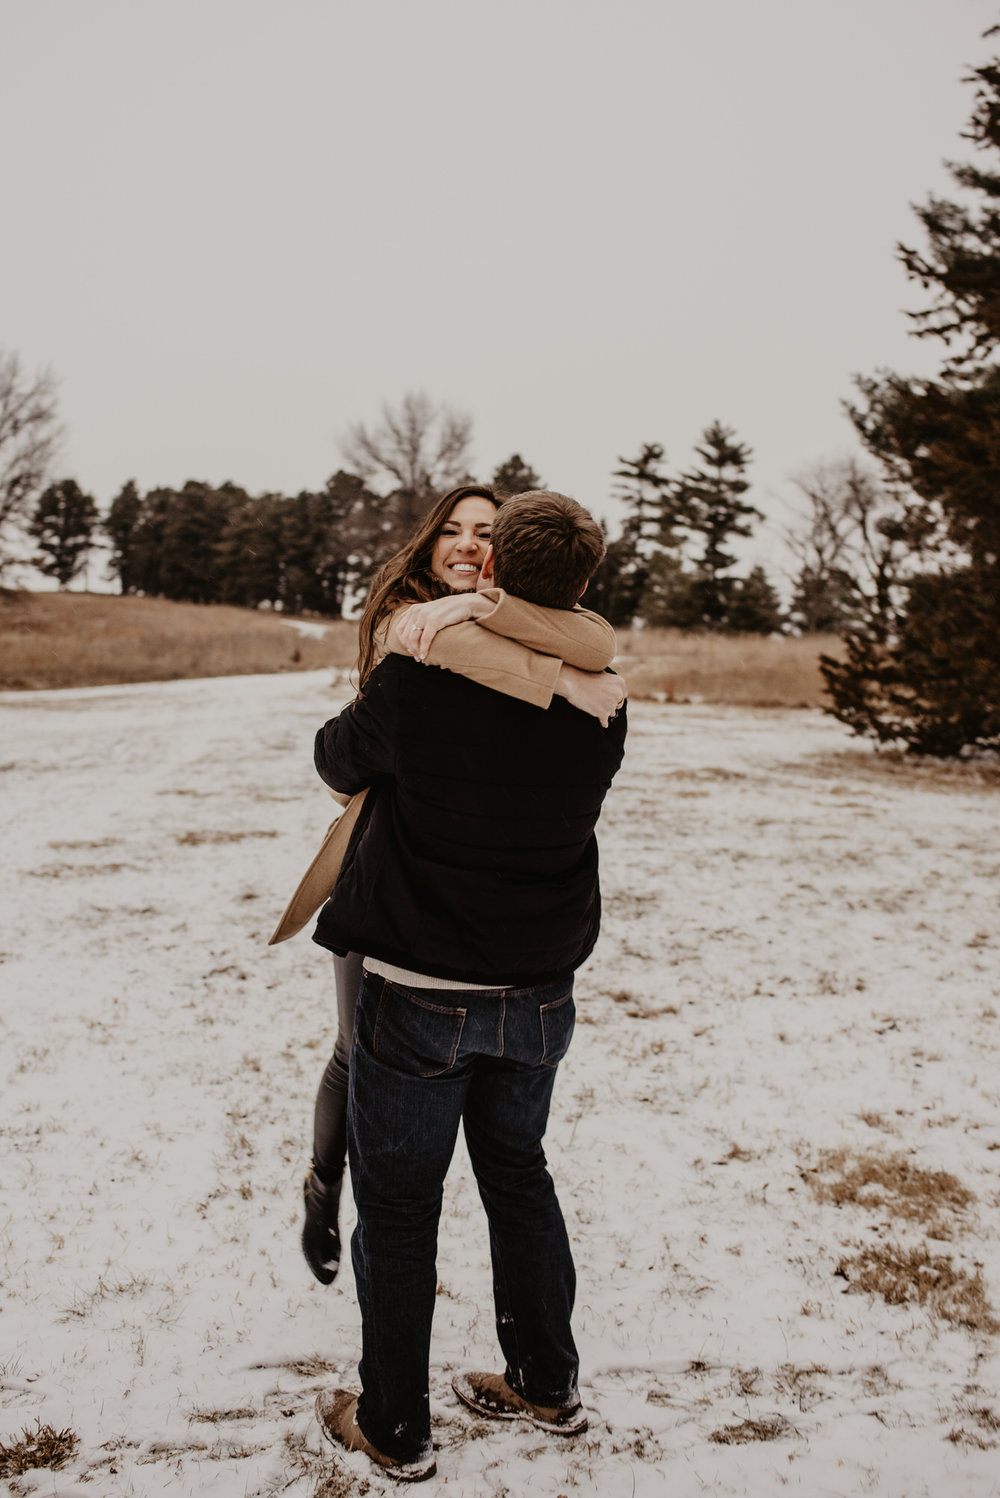 Lincoln-Columbus-Nebraska-Winter-Engagement-Kaylie-Sirek-Photography-28.jpg